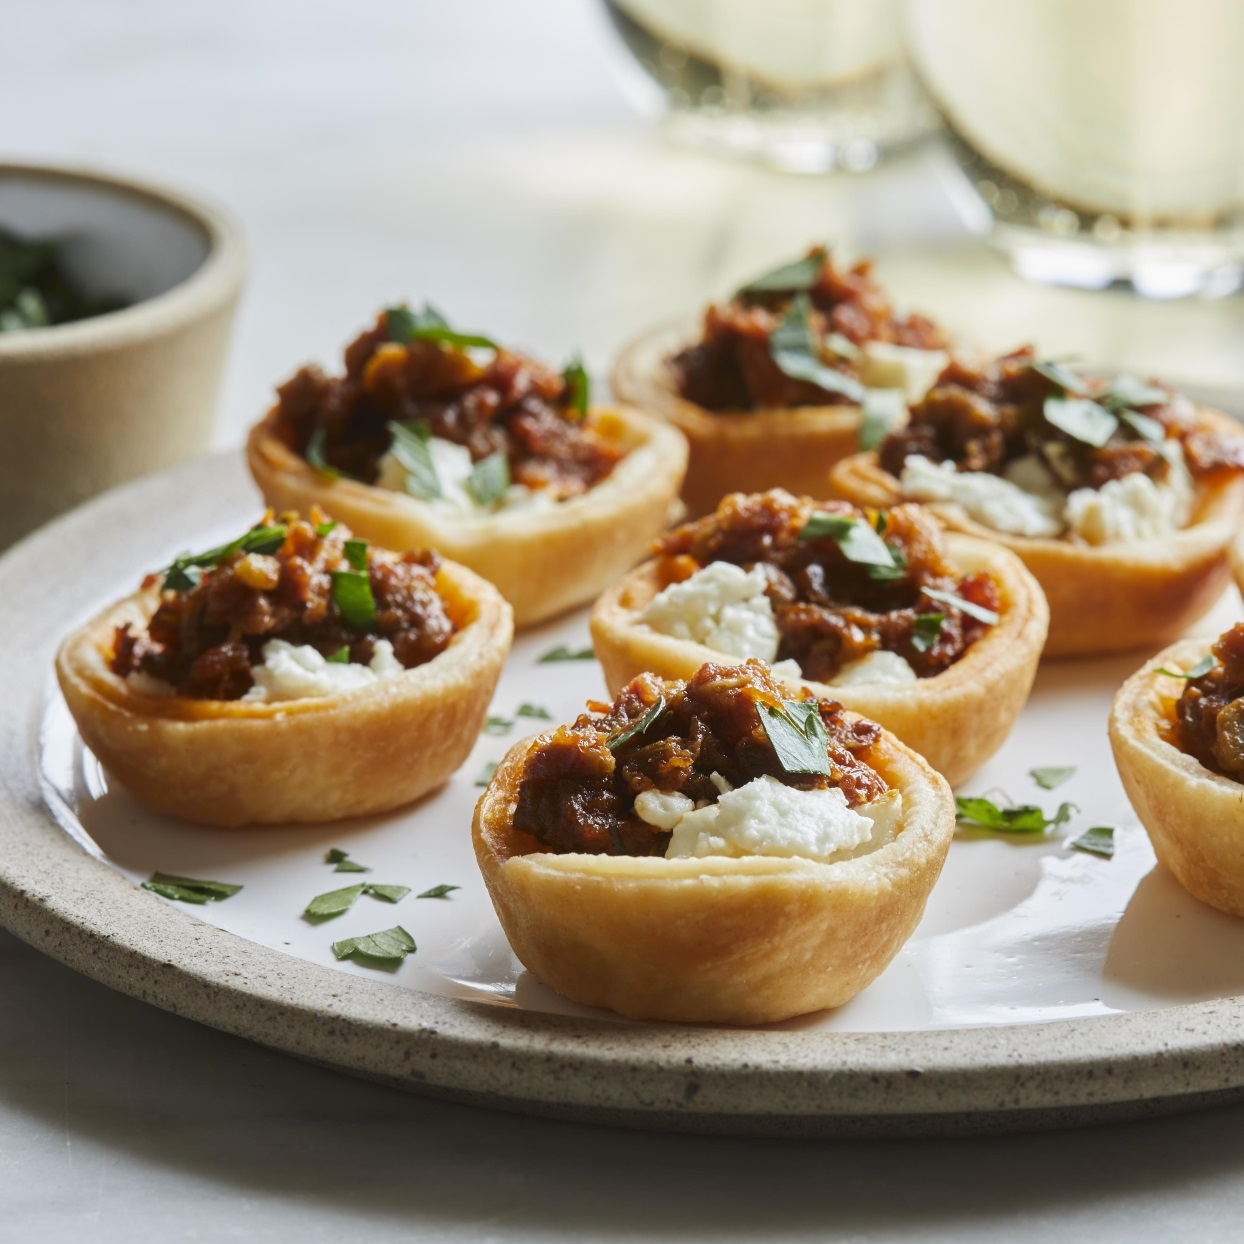 3-Ingredient Goat Cheese & Sun-Dried Tomato Bites Trusted Brands